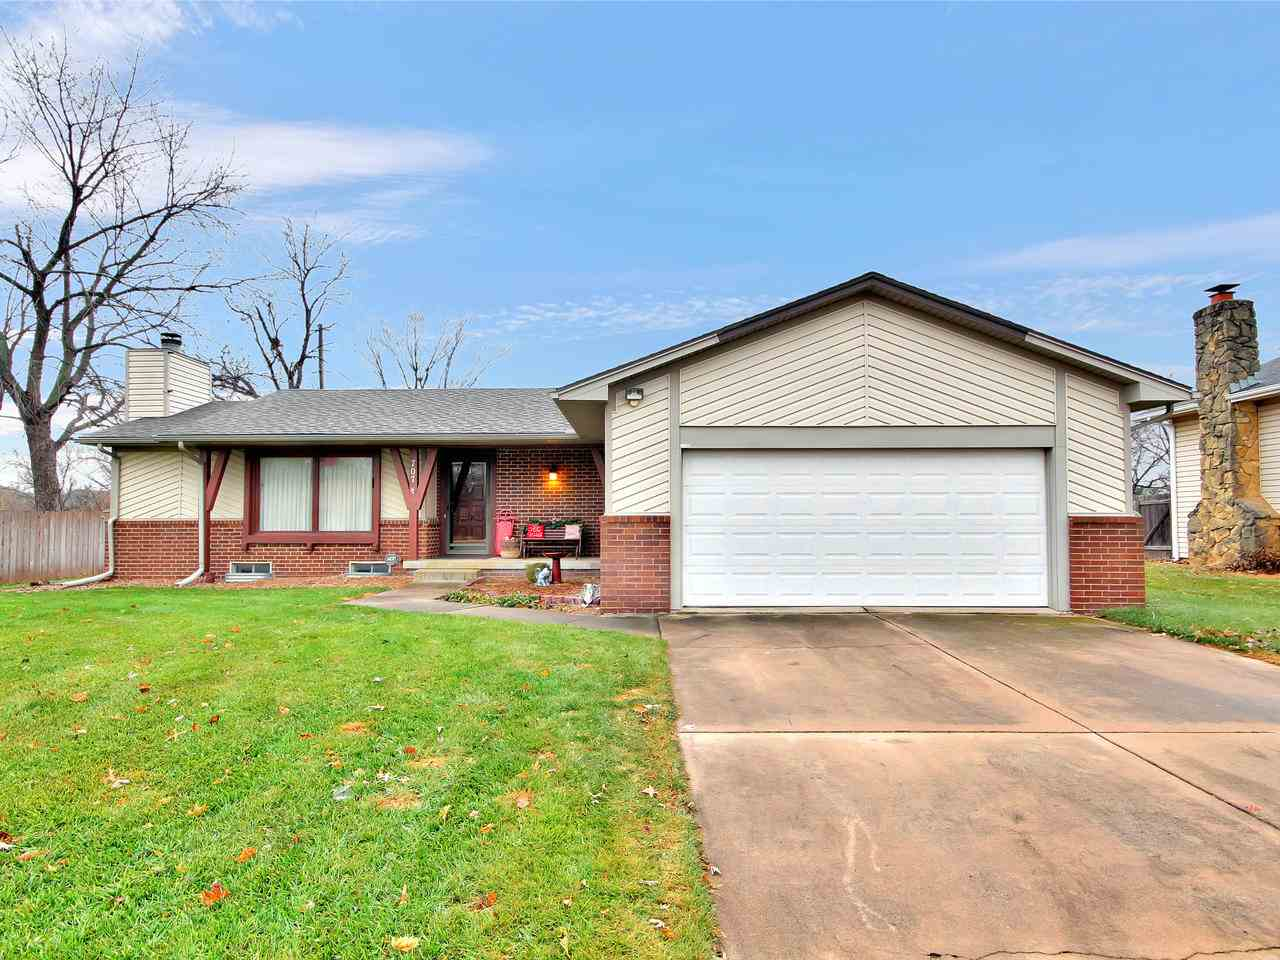 Fabulous Ranch Home In Andover!  Great Curb Appeal With A Wonderfully Inviting Front Porch.  Inside